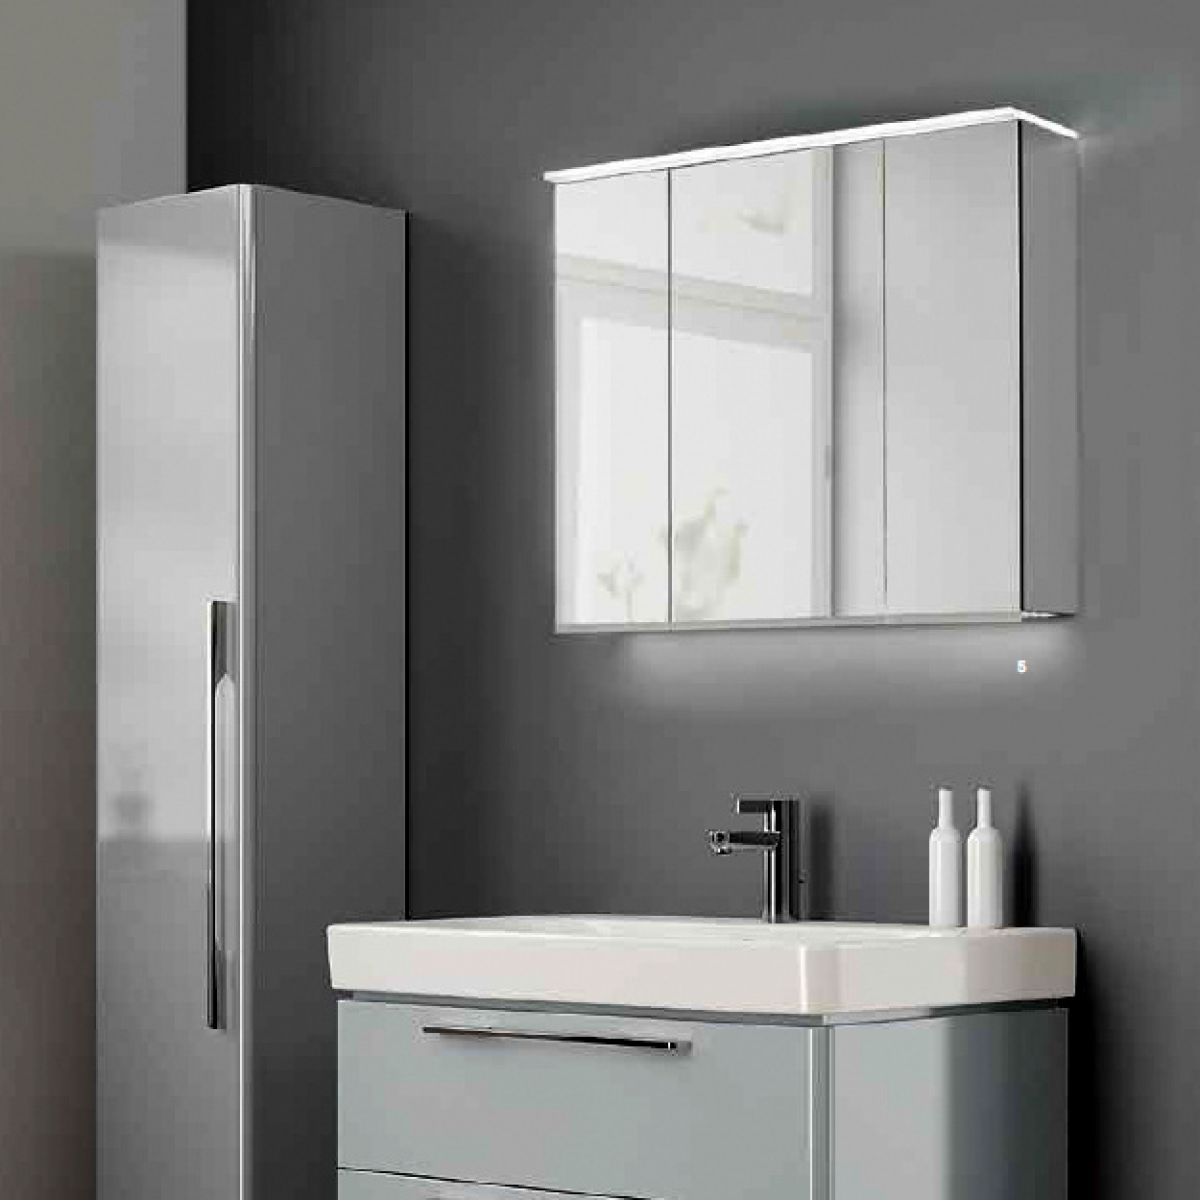 Geberit Option Plus Mirror Cabinet Uk Bathrooms